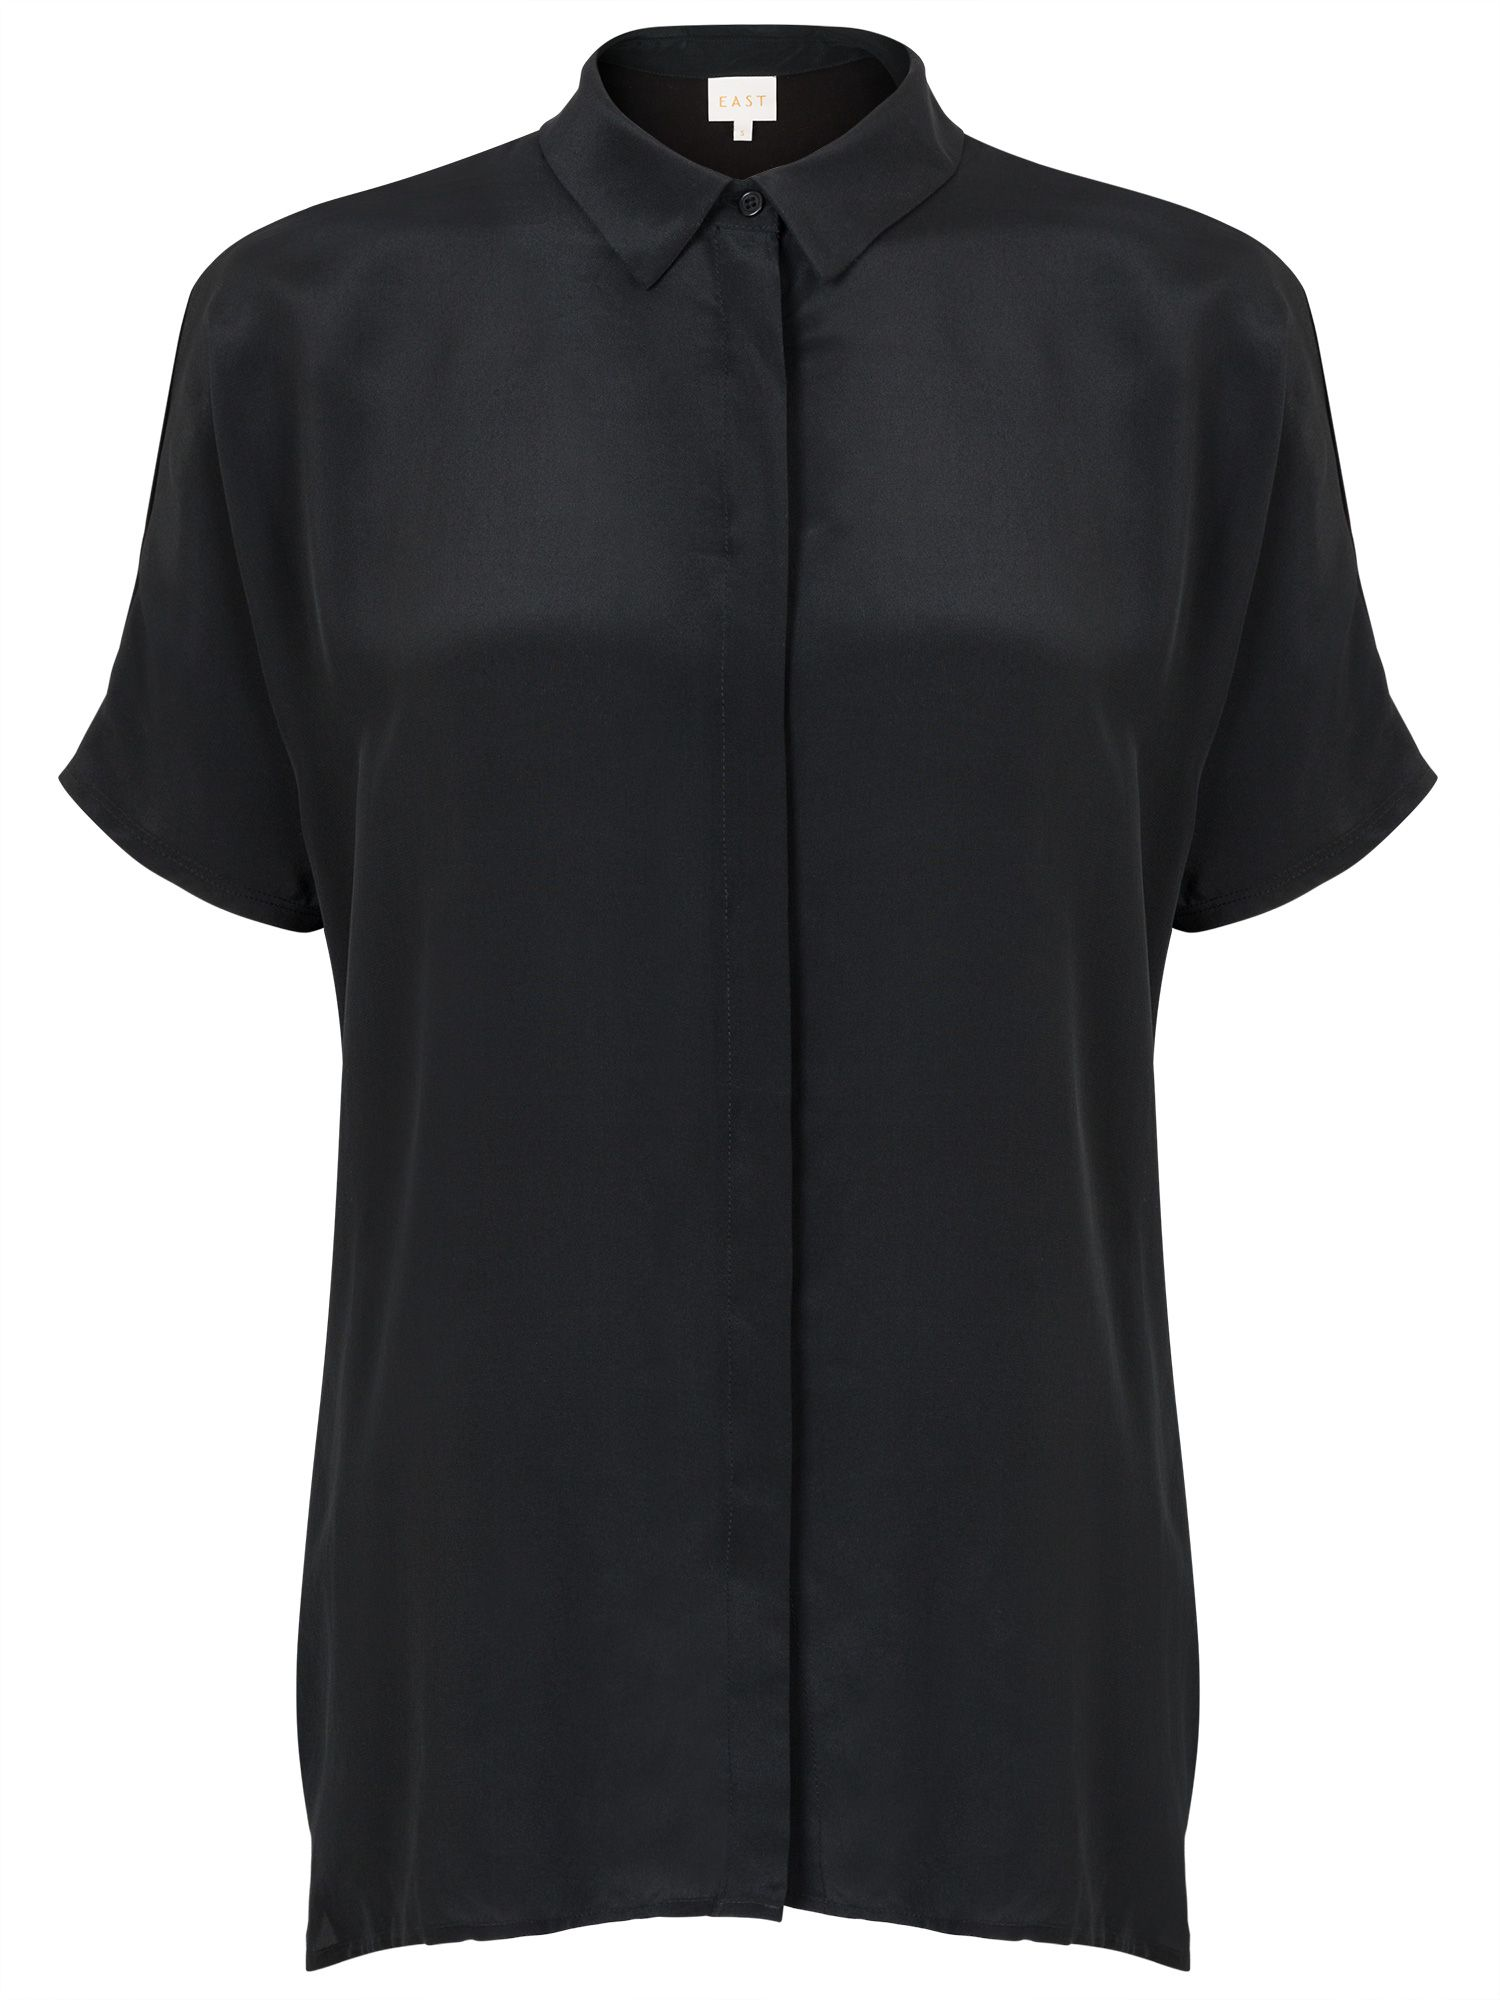 East Combination Silk Tee, Black